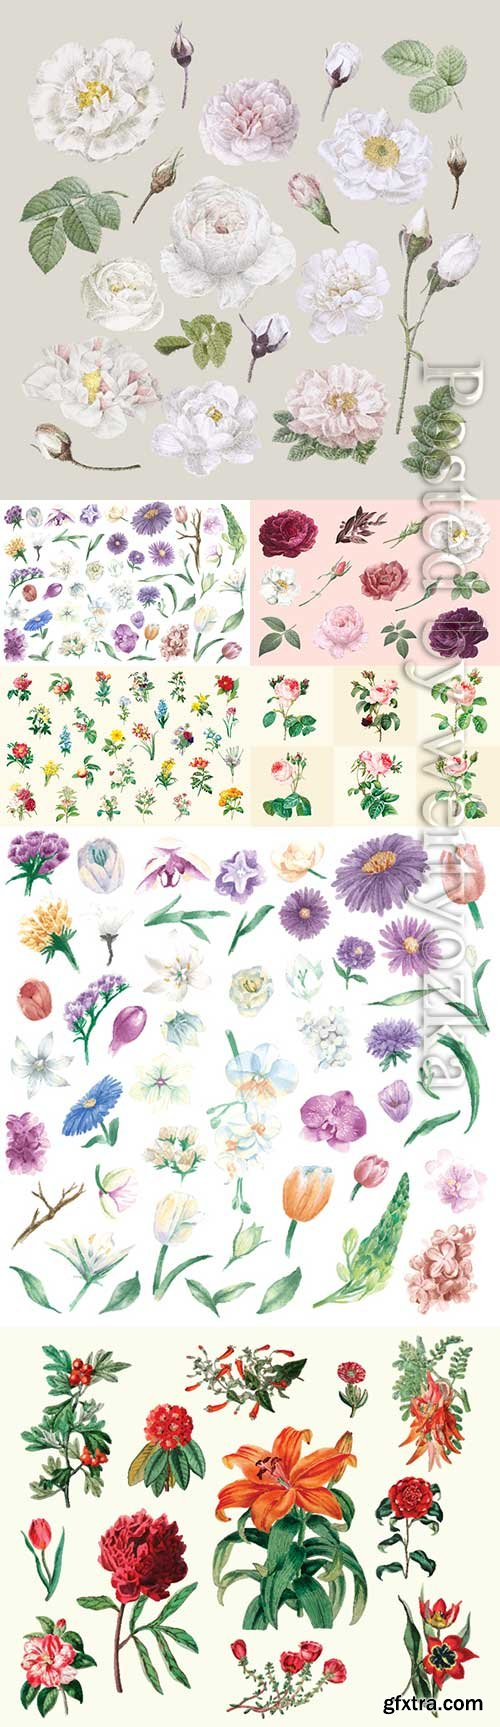 Drawn vector different flowers